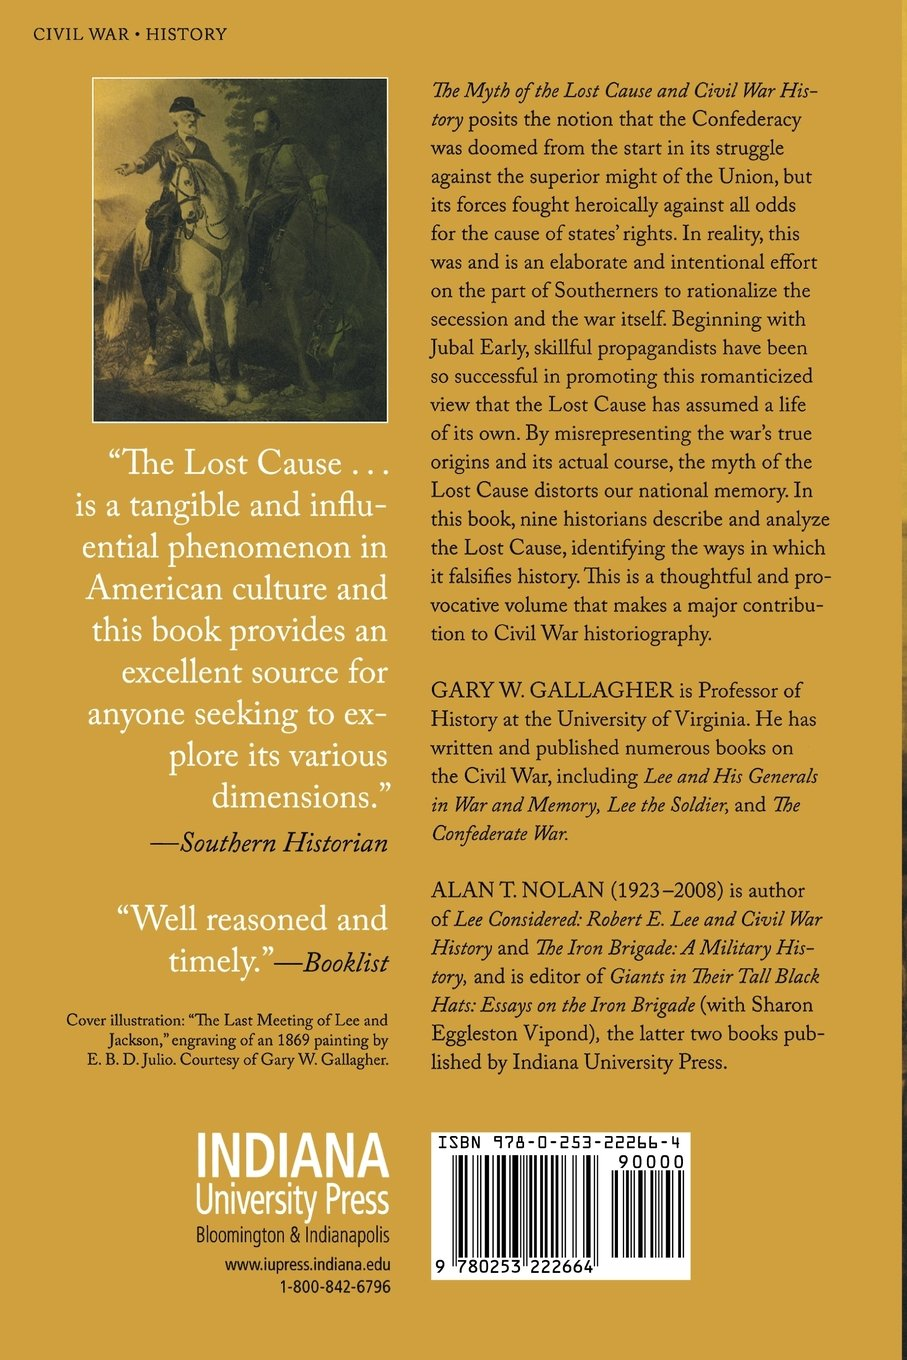 the myth of the lost cause and civil war history gary w the myth of the lost cause and civil war history gary w gallagher alan t nolan 9780253222664 com books